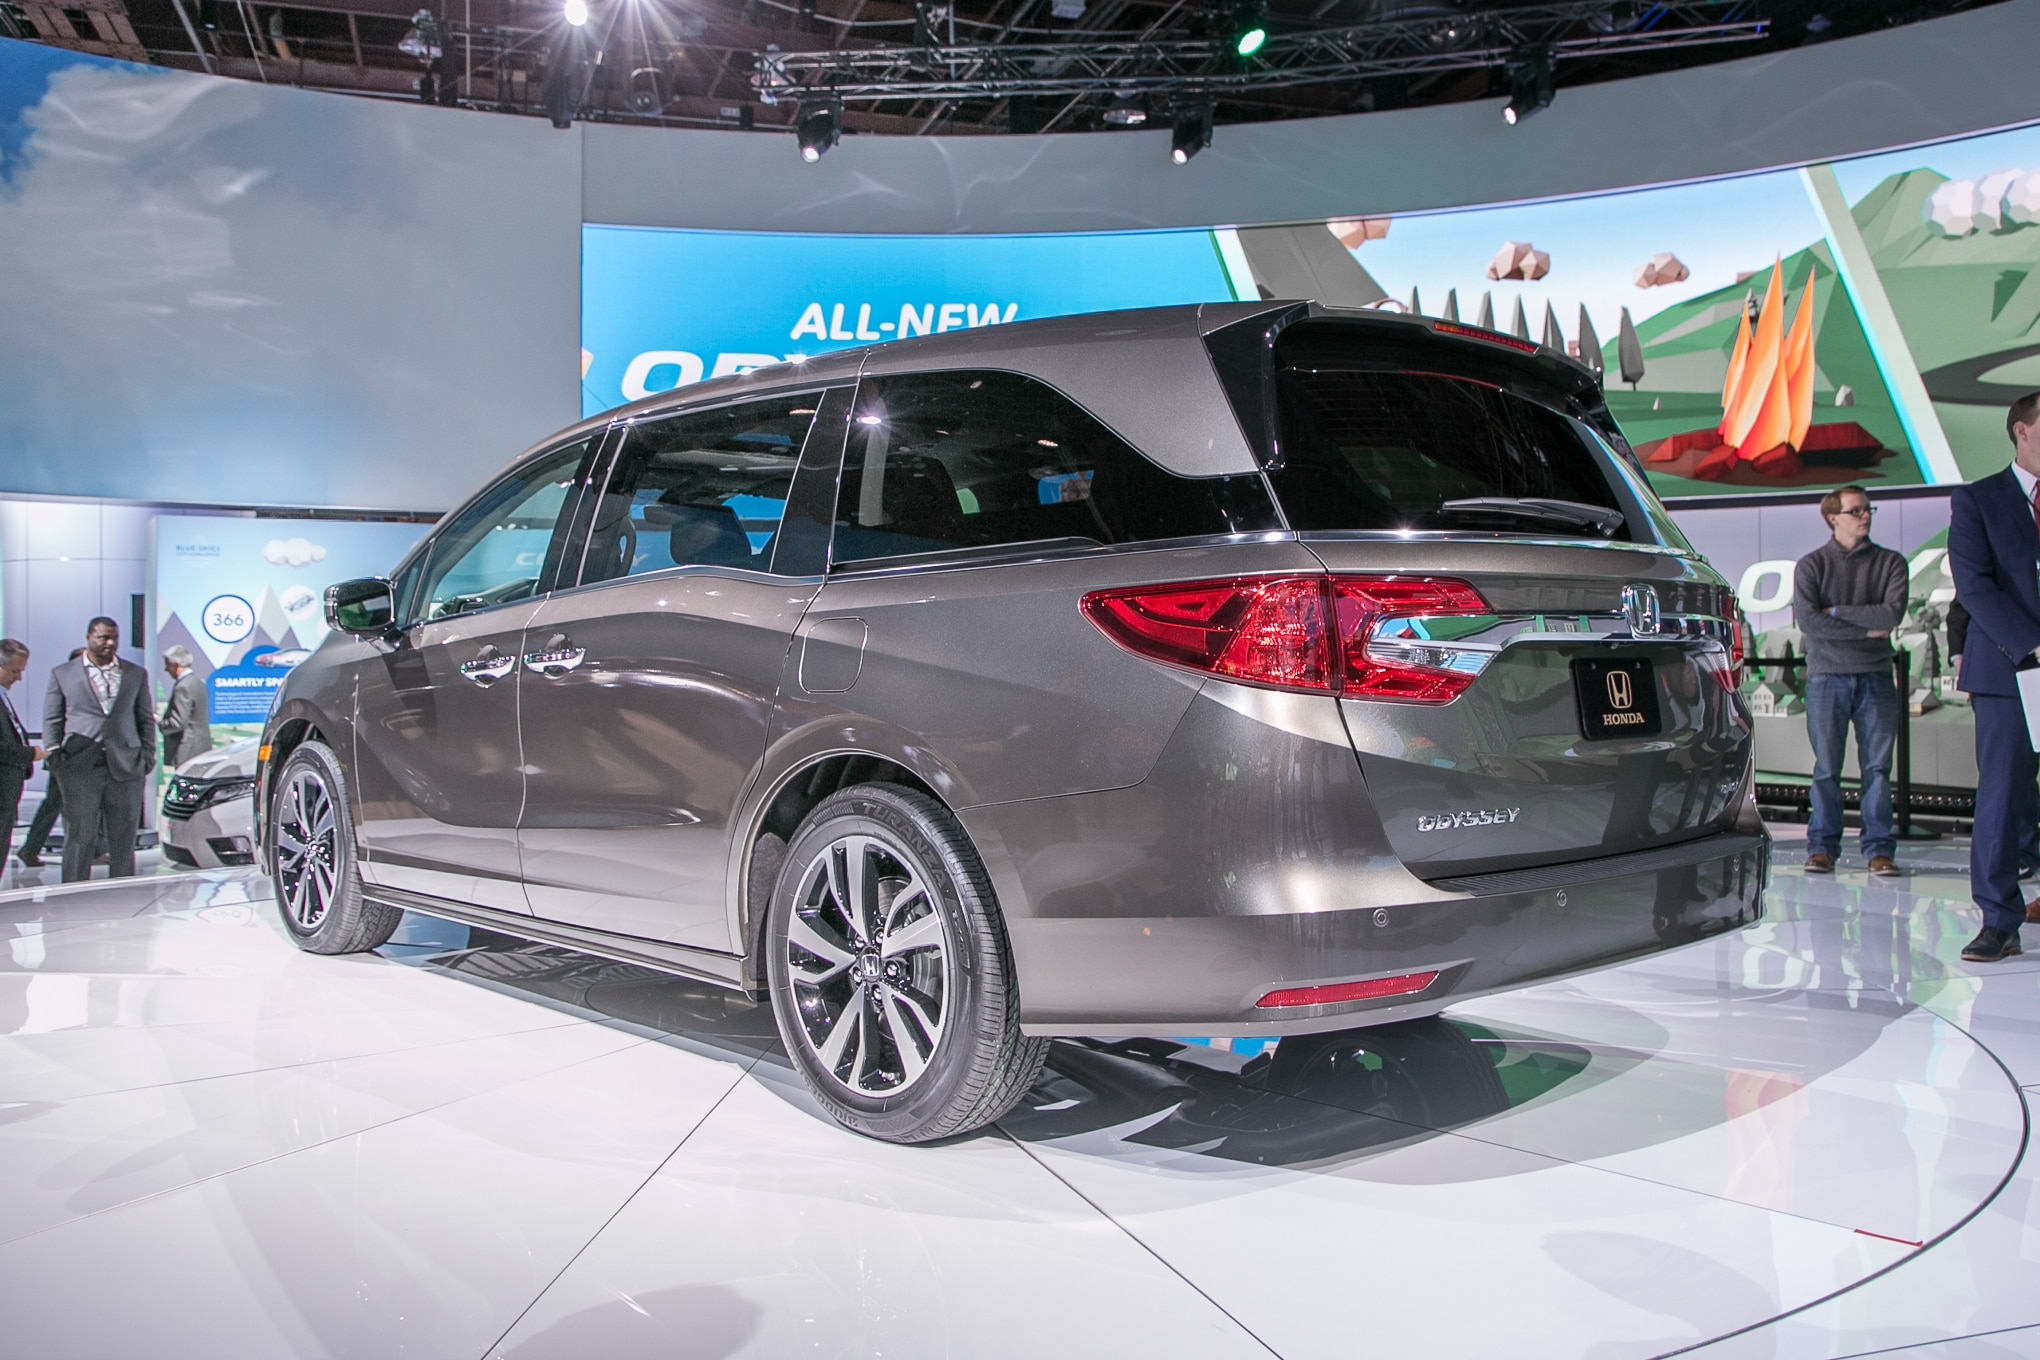 http://st.automobilemag.com/uploads/sites/11/2017/01/2018-Honda-Odyssey-rear-three-quarter.jpg